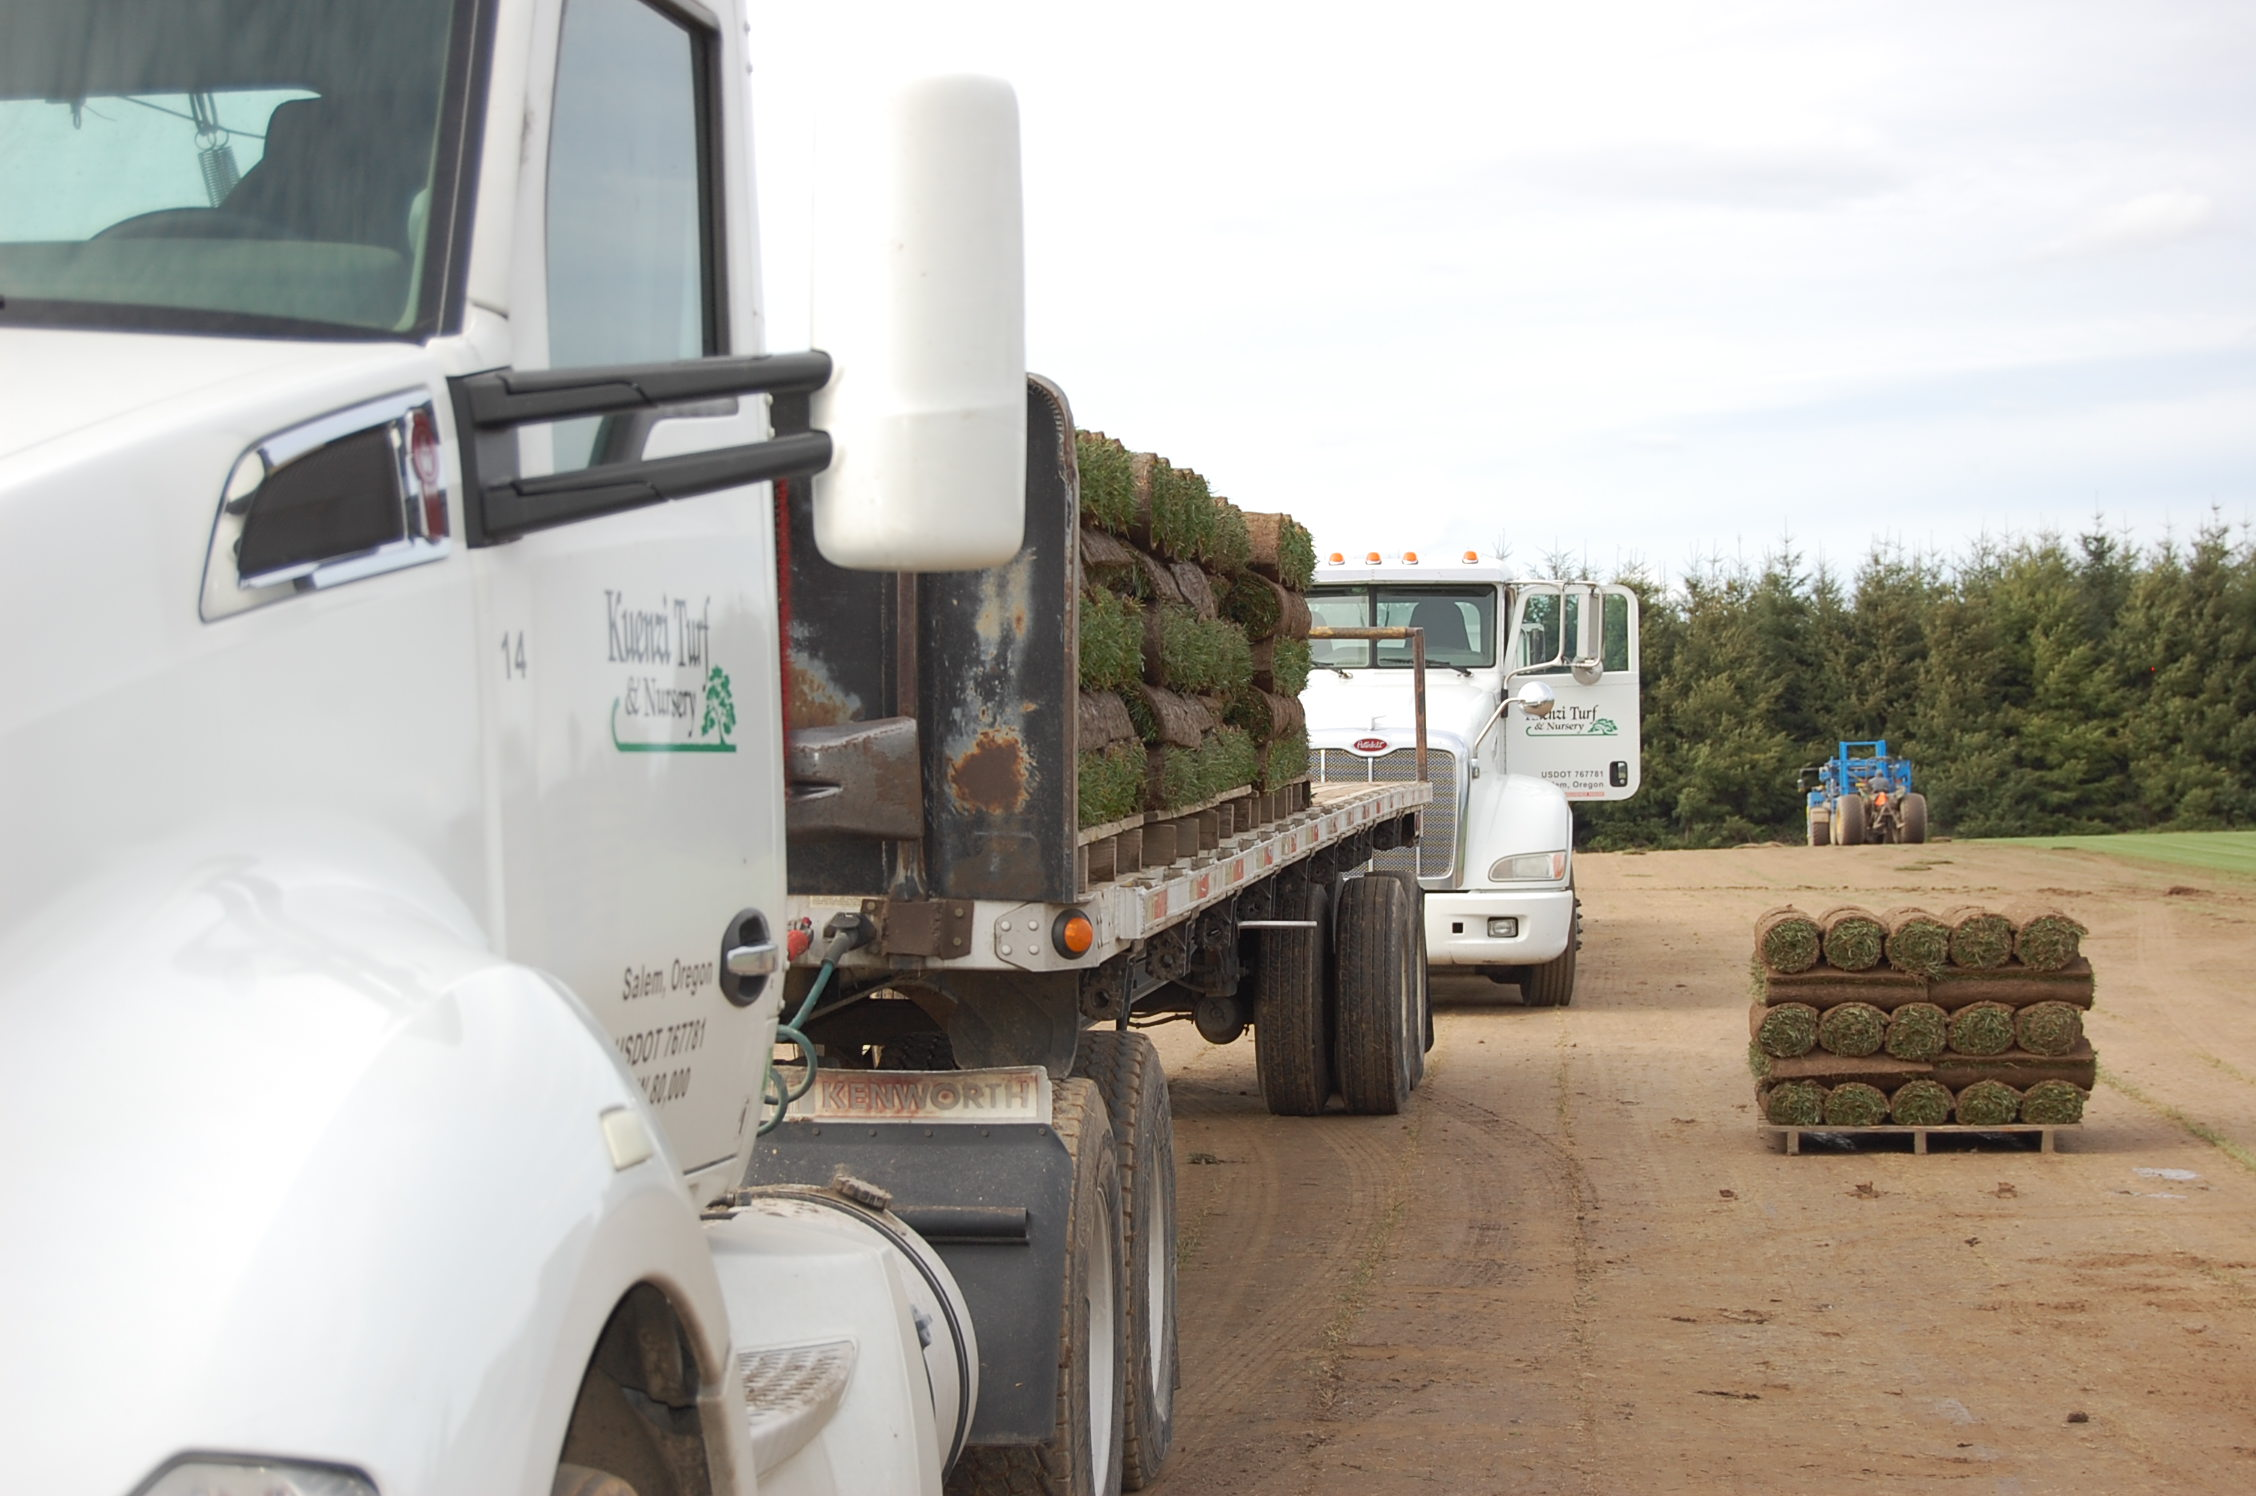 rolls of sod being loaded onto a truck